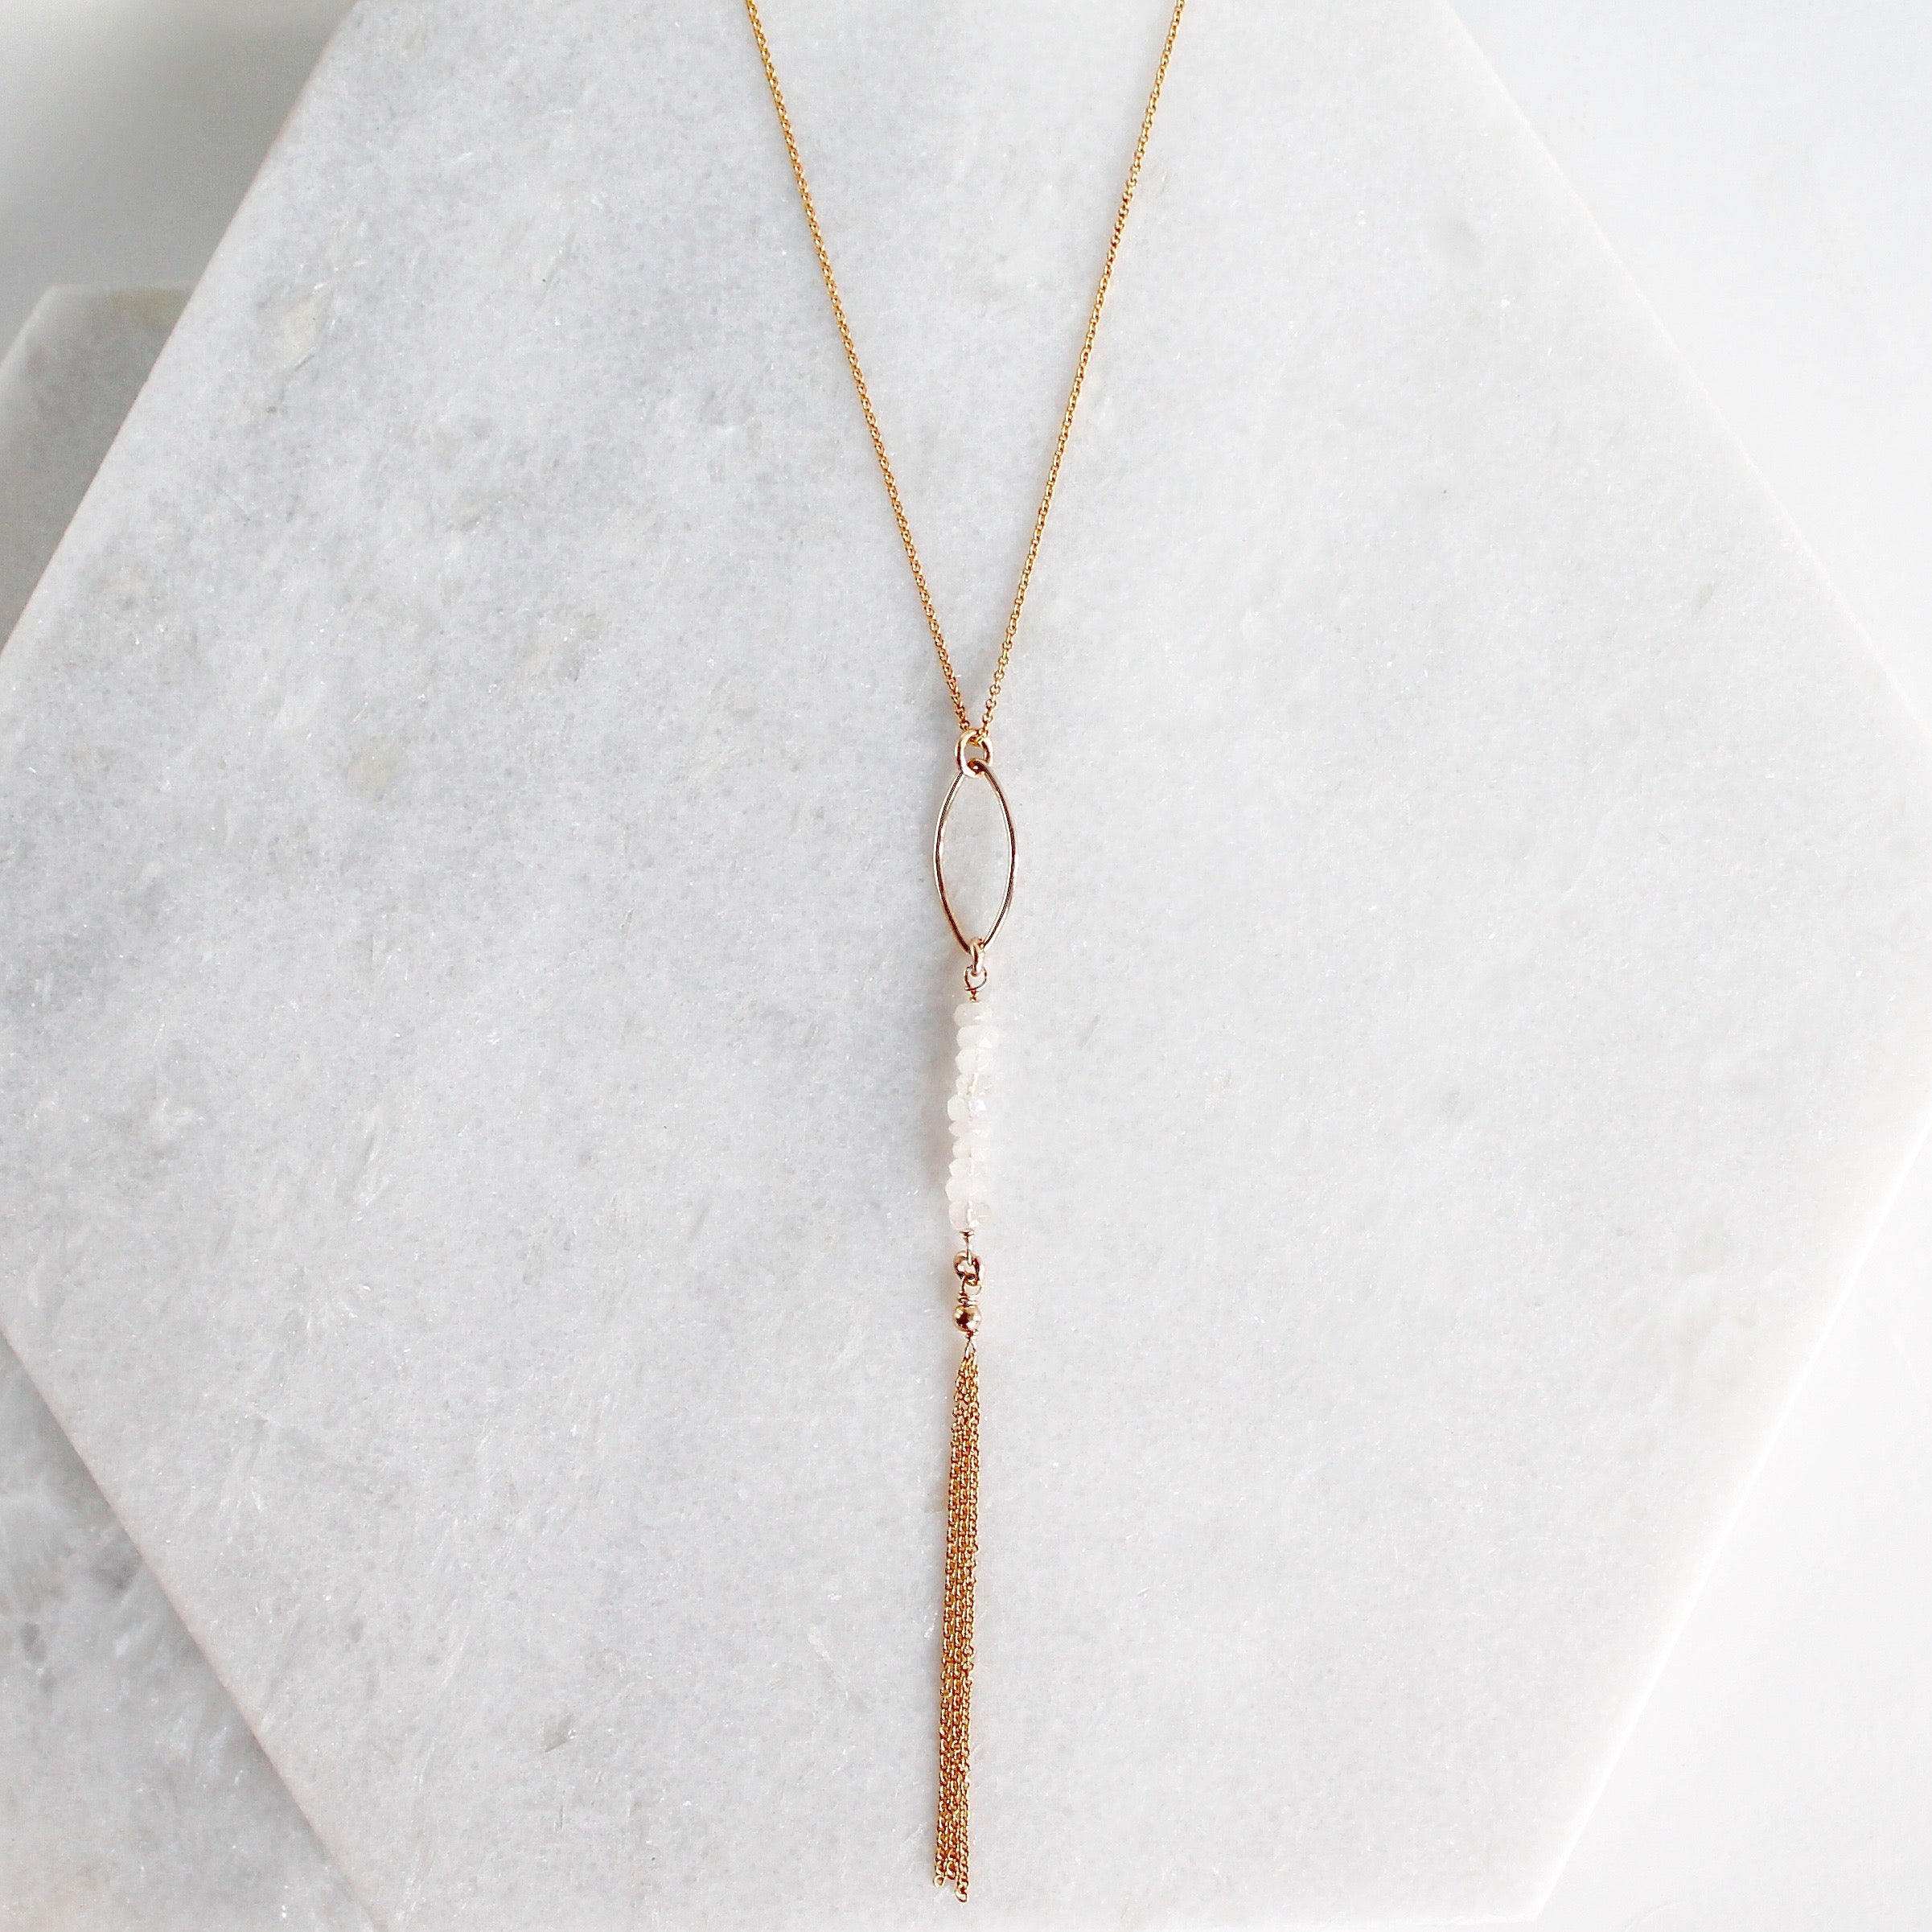 Aquafina Moonstone Lariat